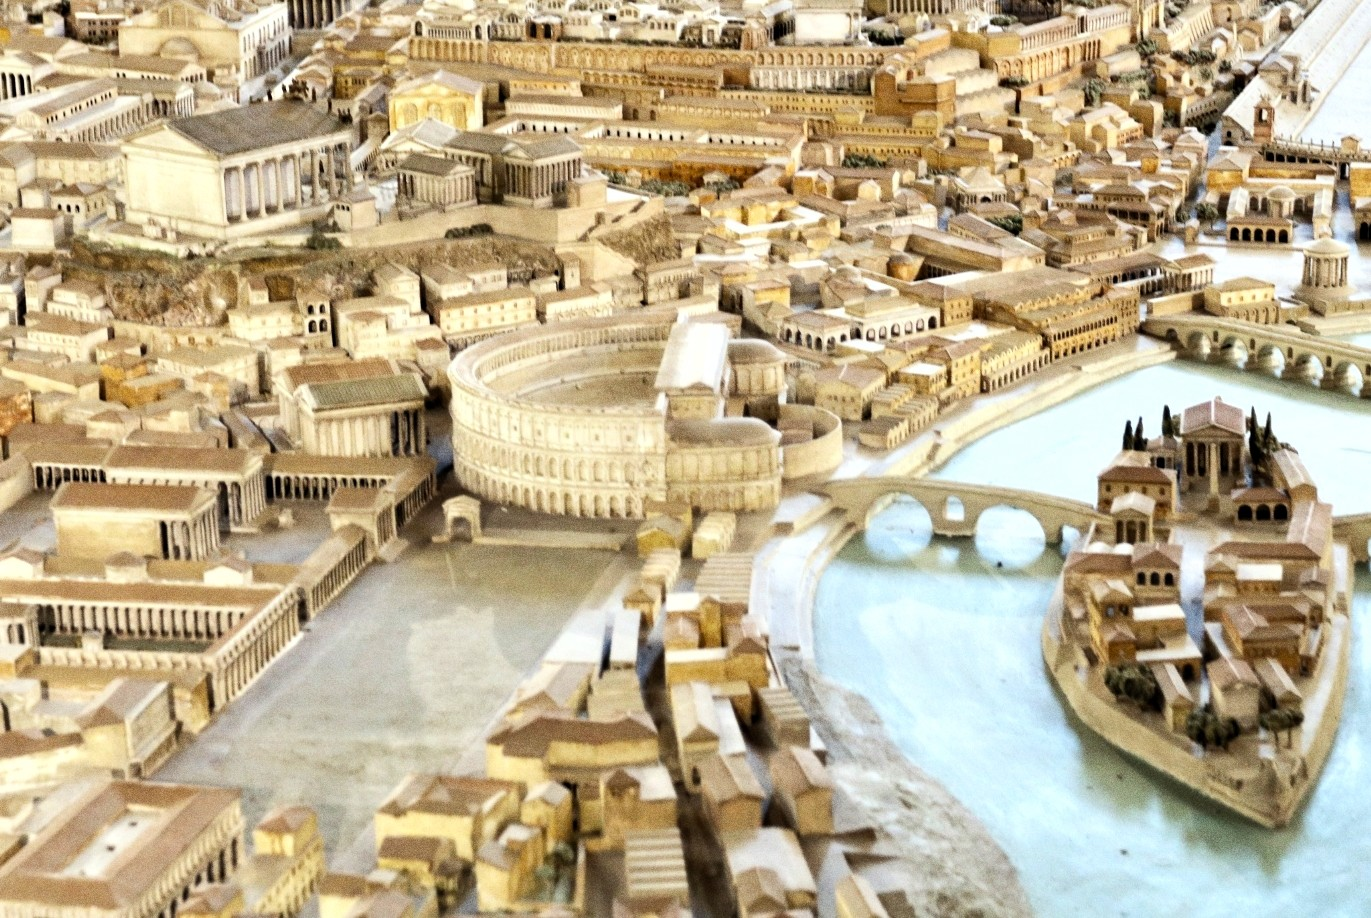 Pictures of History: Ancient Rome - John Hauser